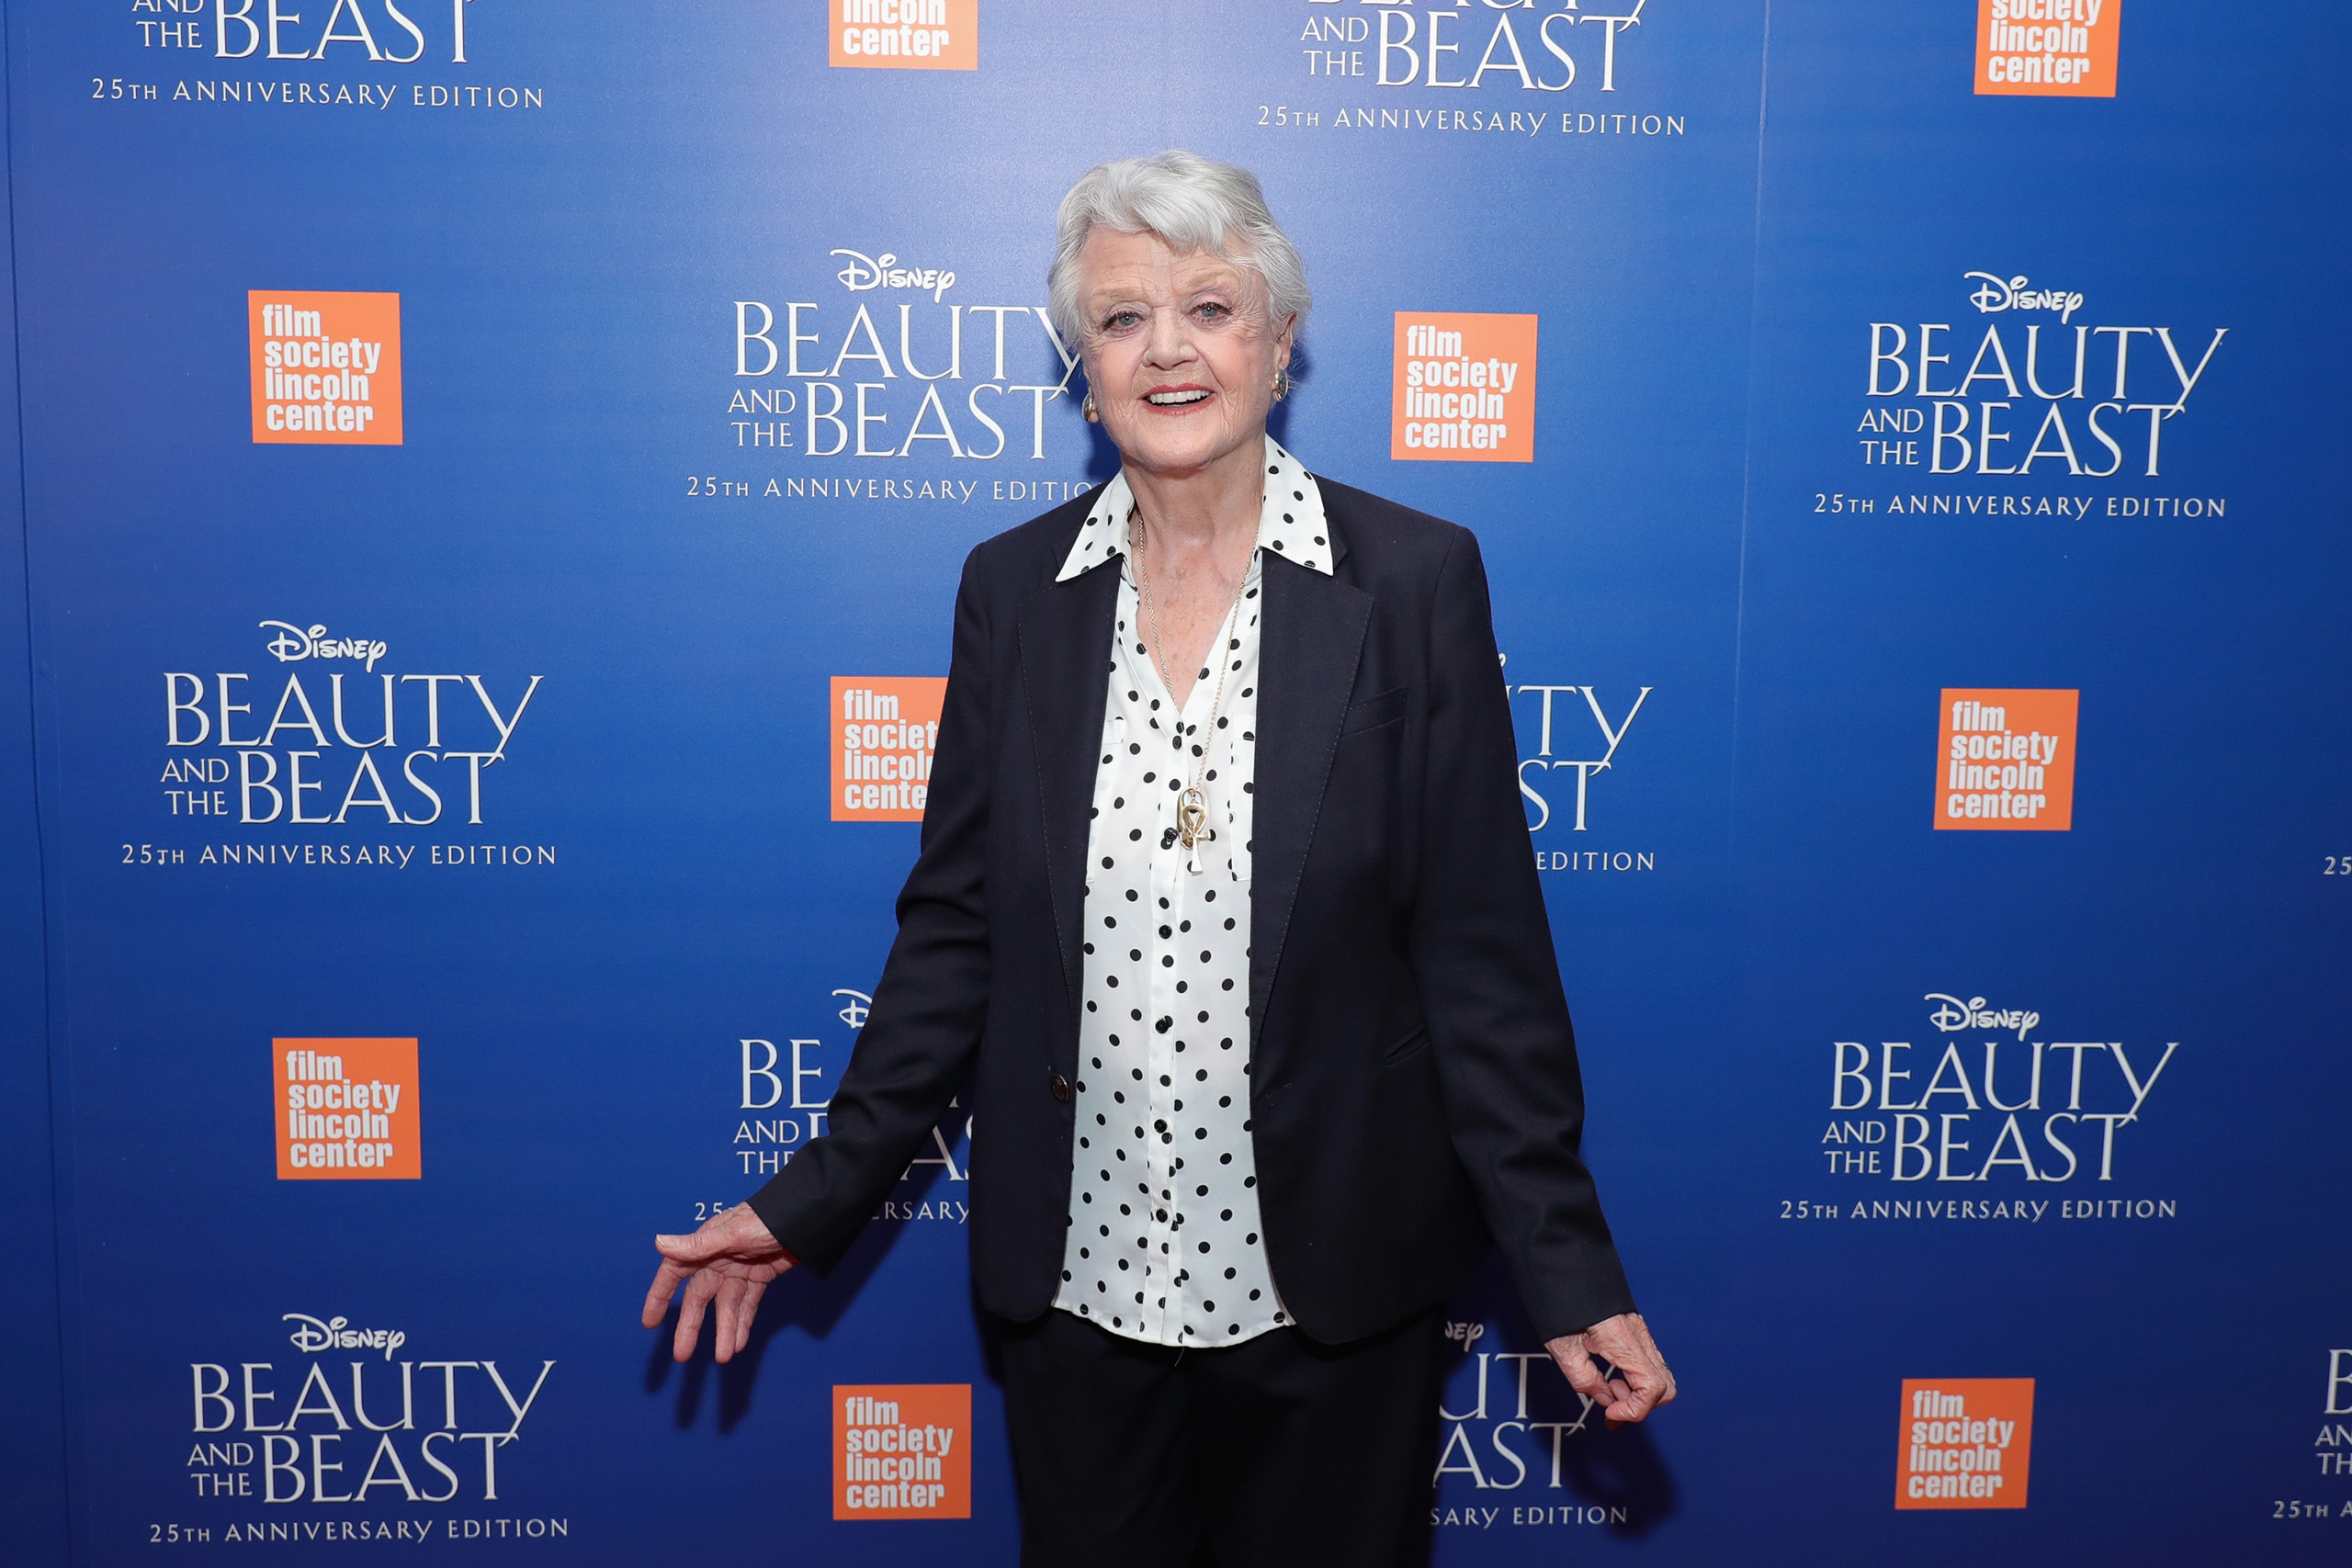 Angela Lansbury attends the special screening of Disney's  Beauty and the Beast  to celebrate the 25th Anniversary Edition release in New York City on Sept. 18, 2016.